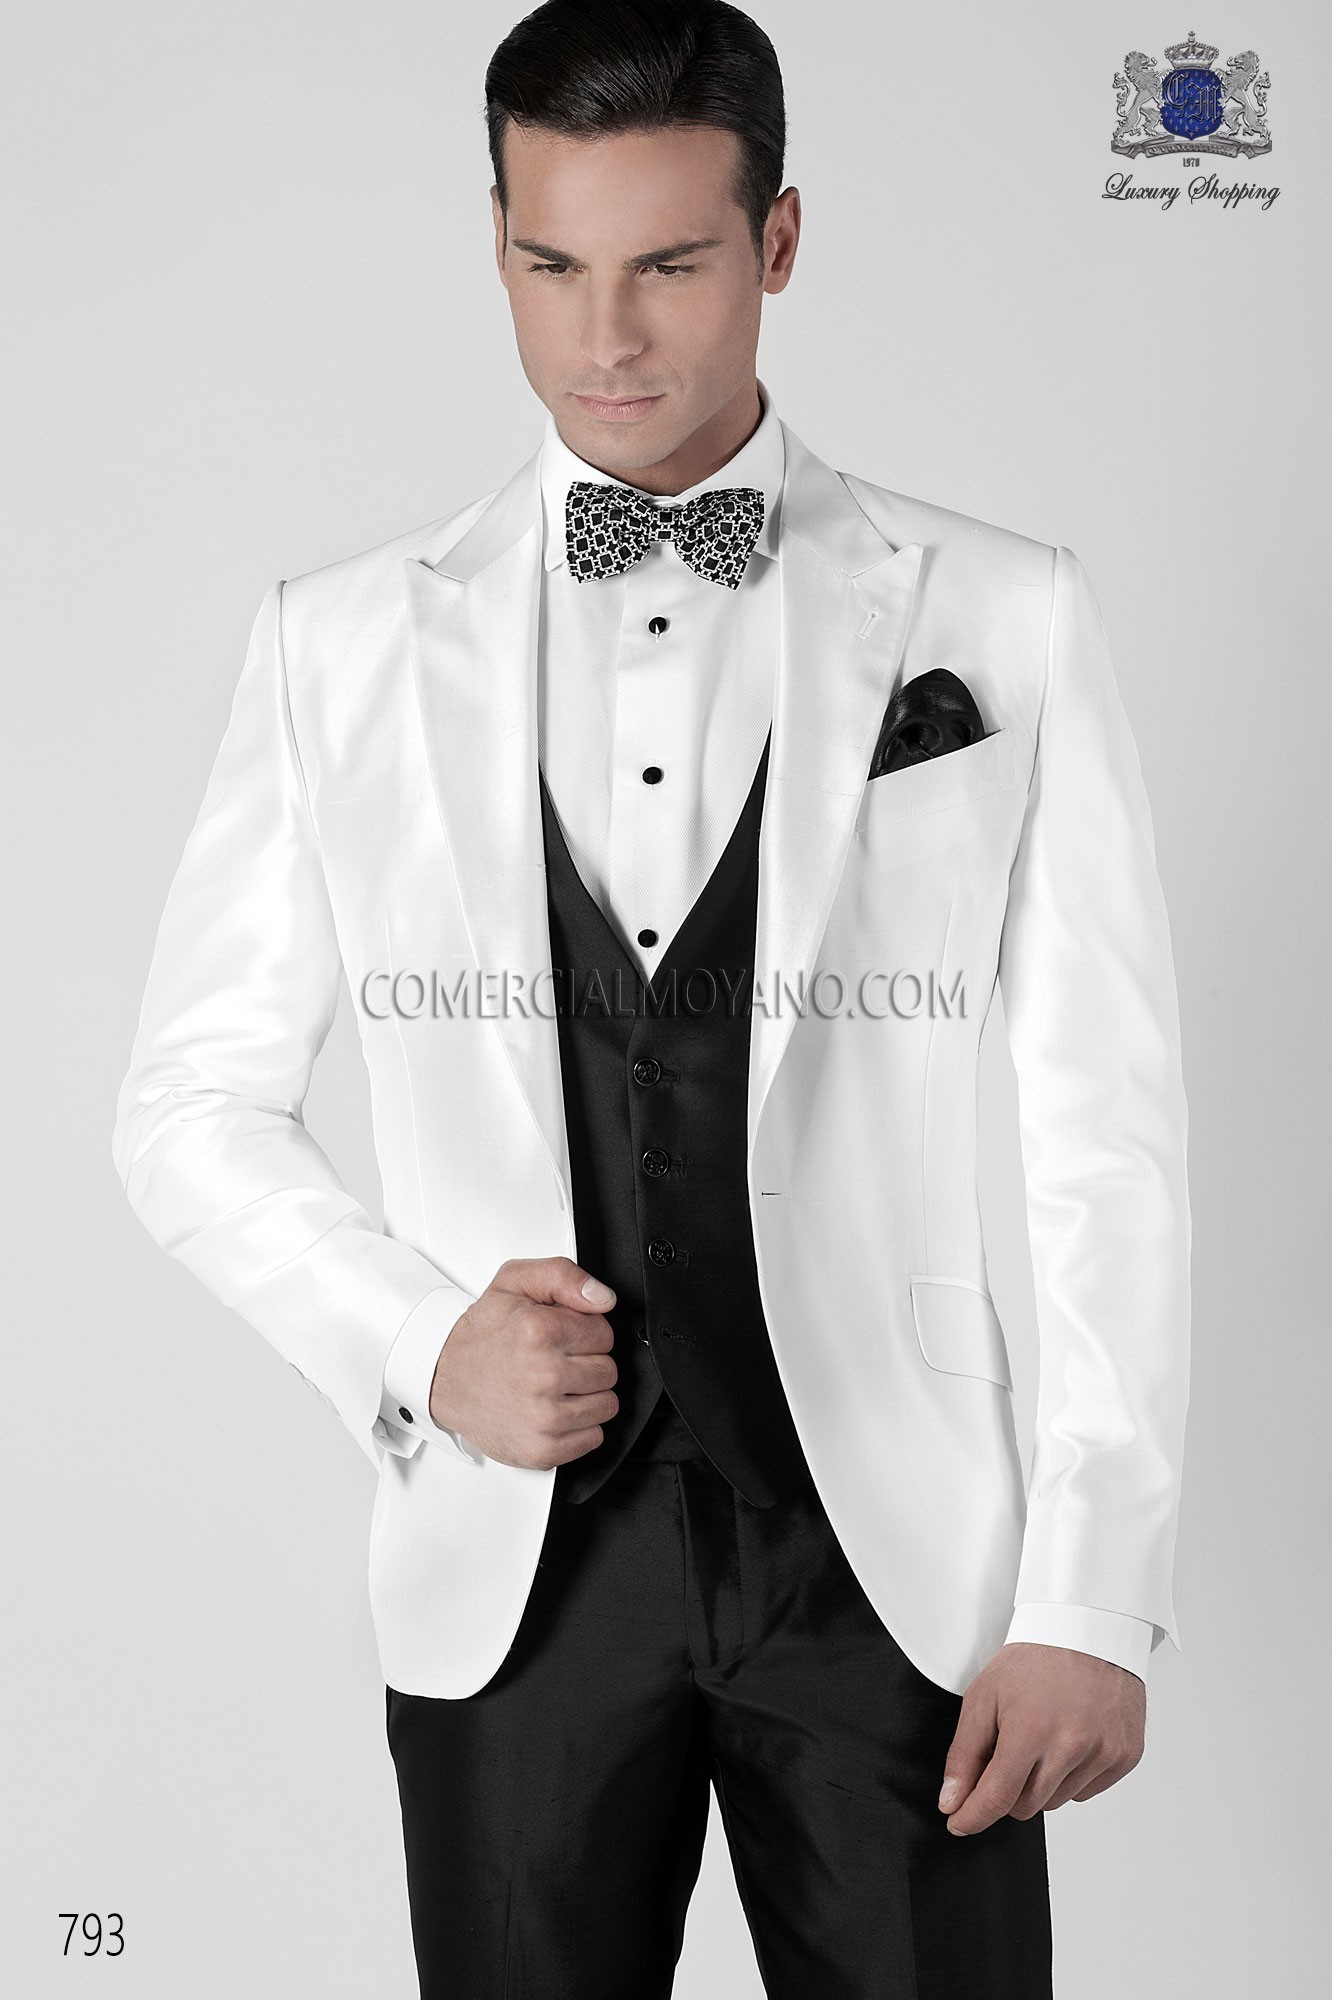 Black Tie white men wedding suit, model: 793 Ottavio Nuccio Gala ...